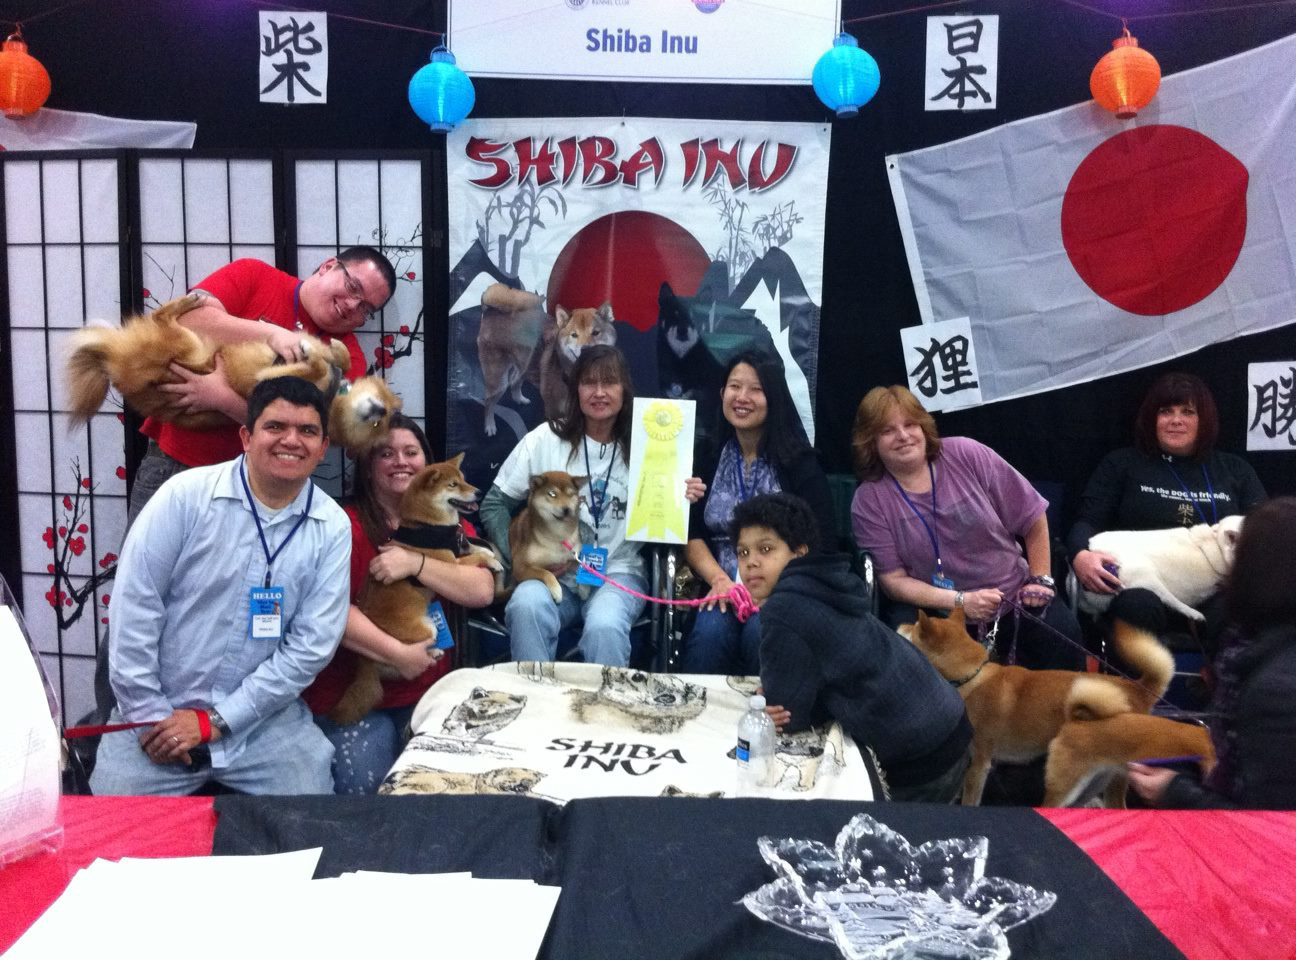 AKC NYC Meet the Breeds Booth - Third Place!